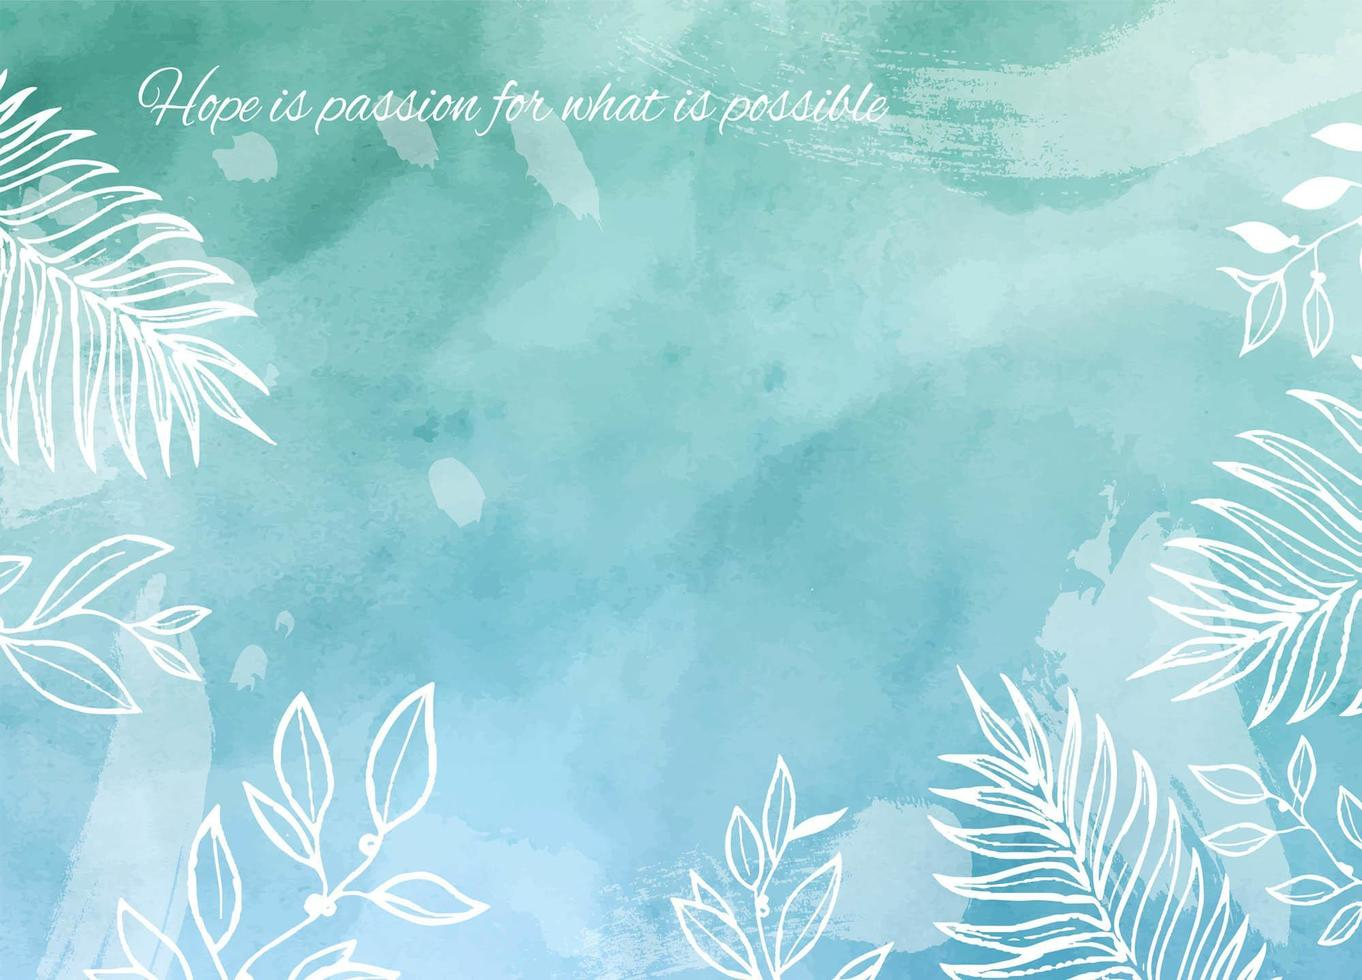 Blue and Green Watercolor Texture with Foliage vector